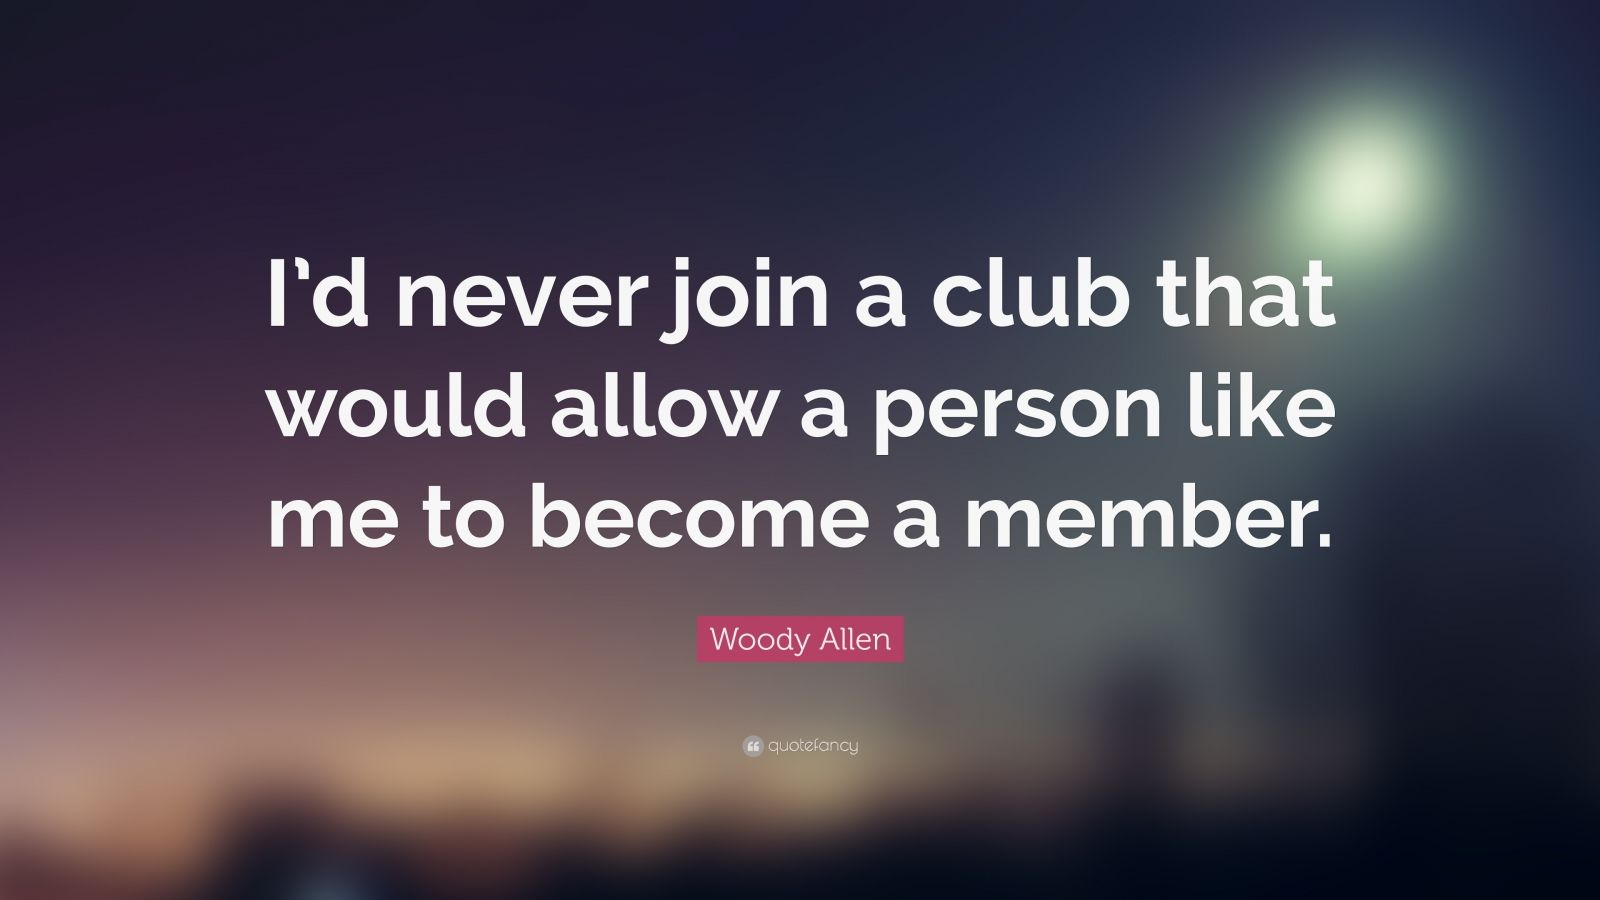 """Woody Allen Quote: """"I'd never join a club that would allow a person like me to become a member."""""""